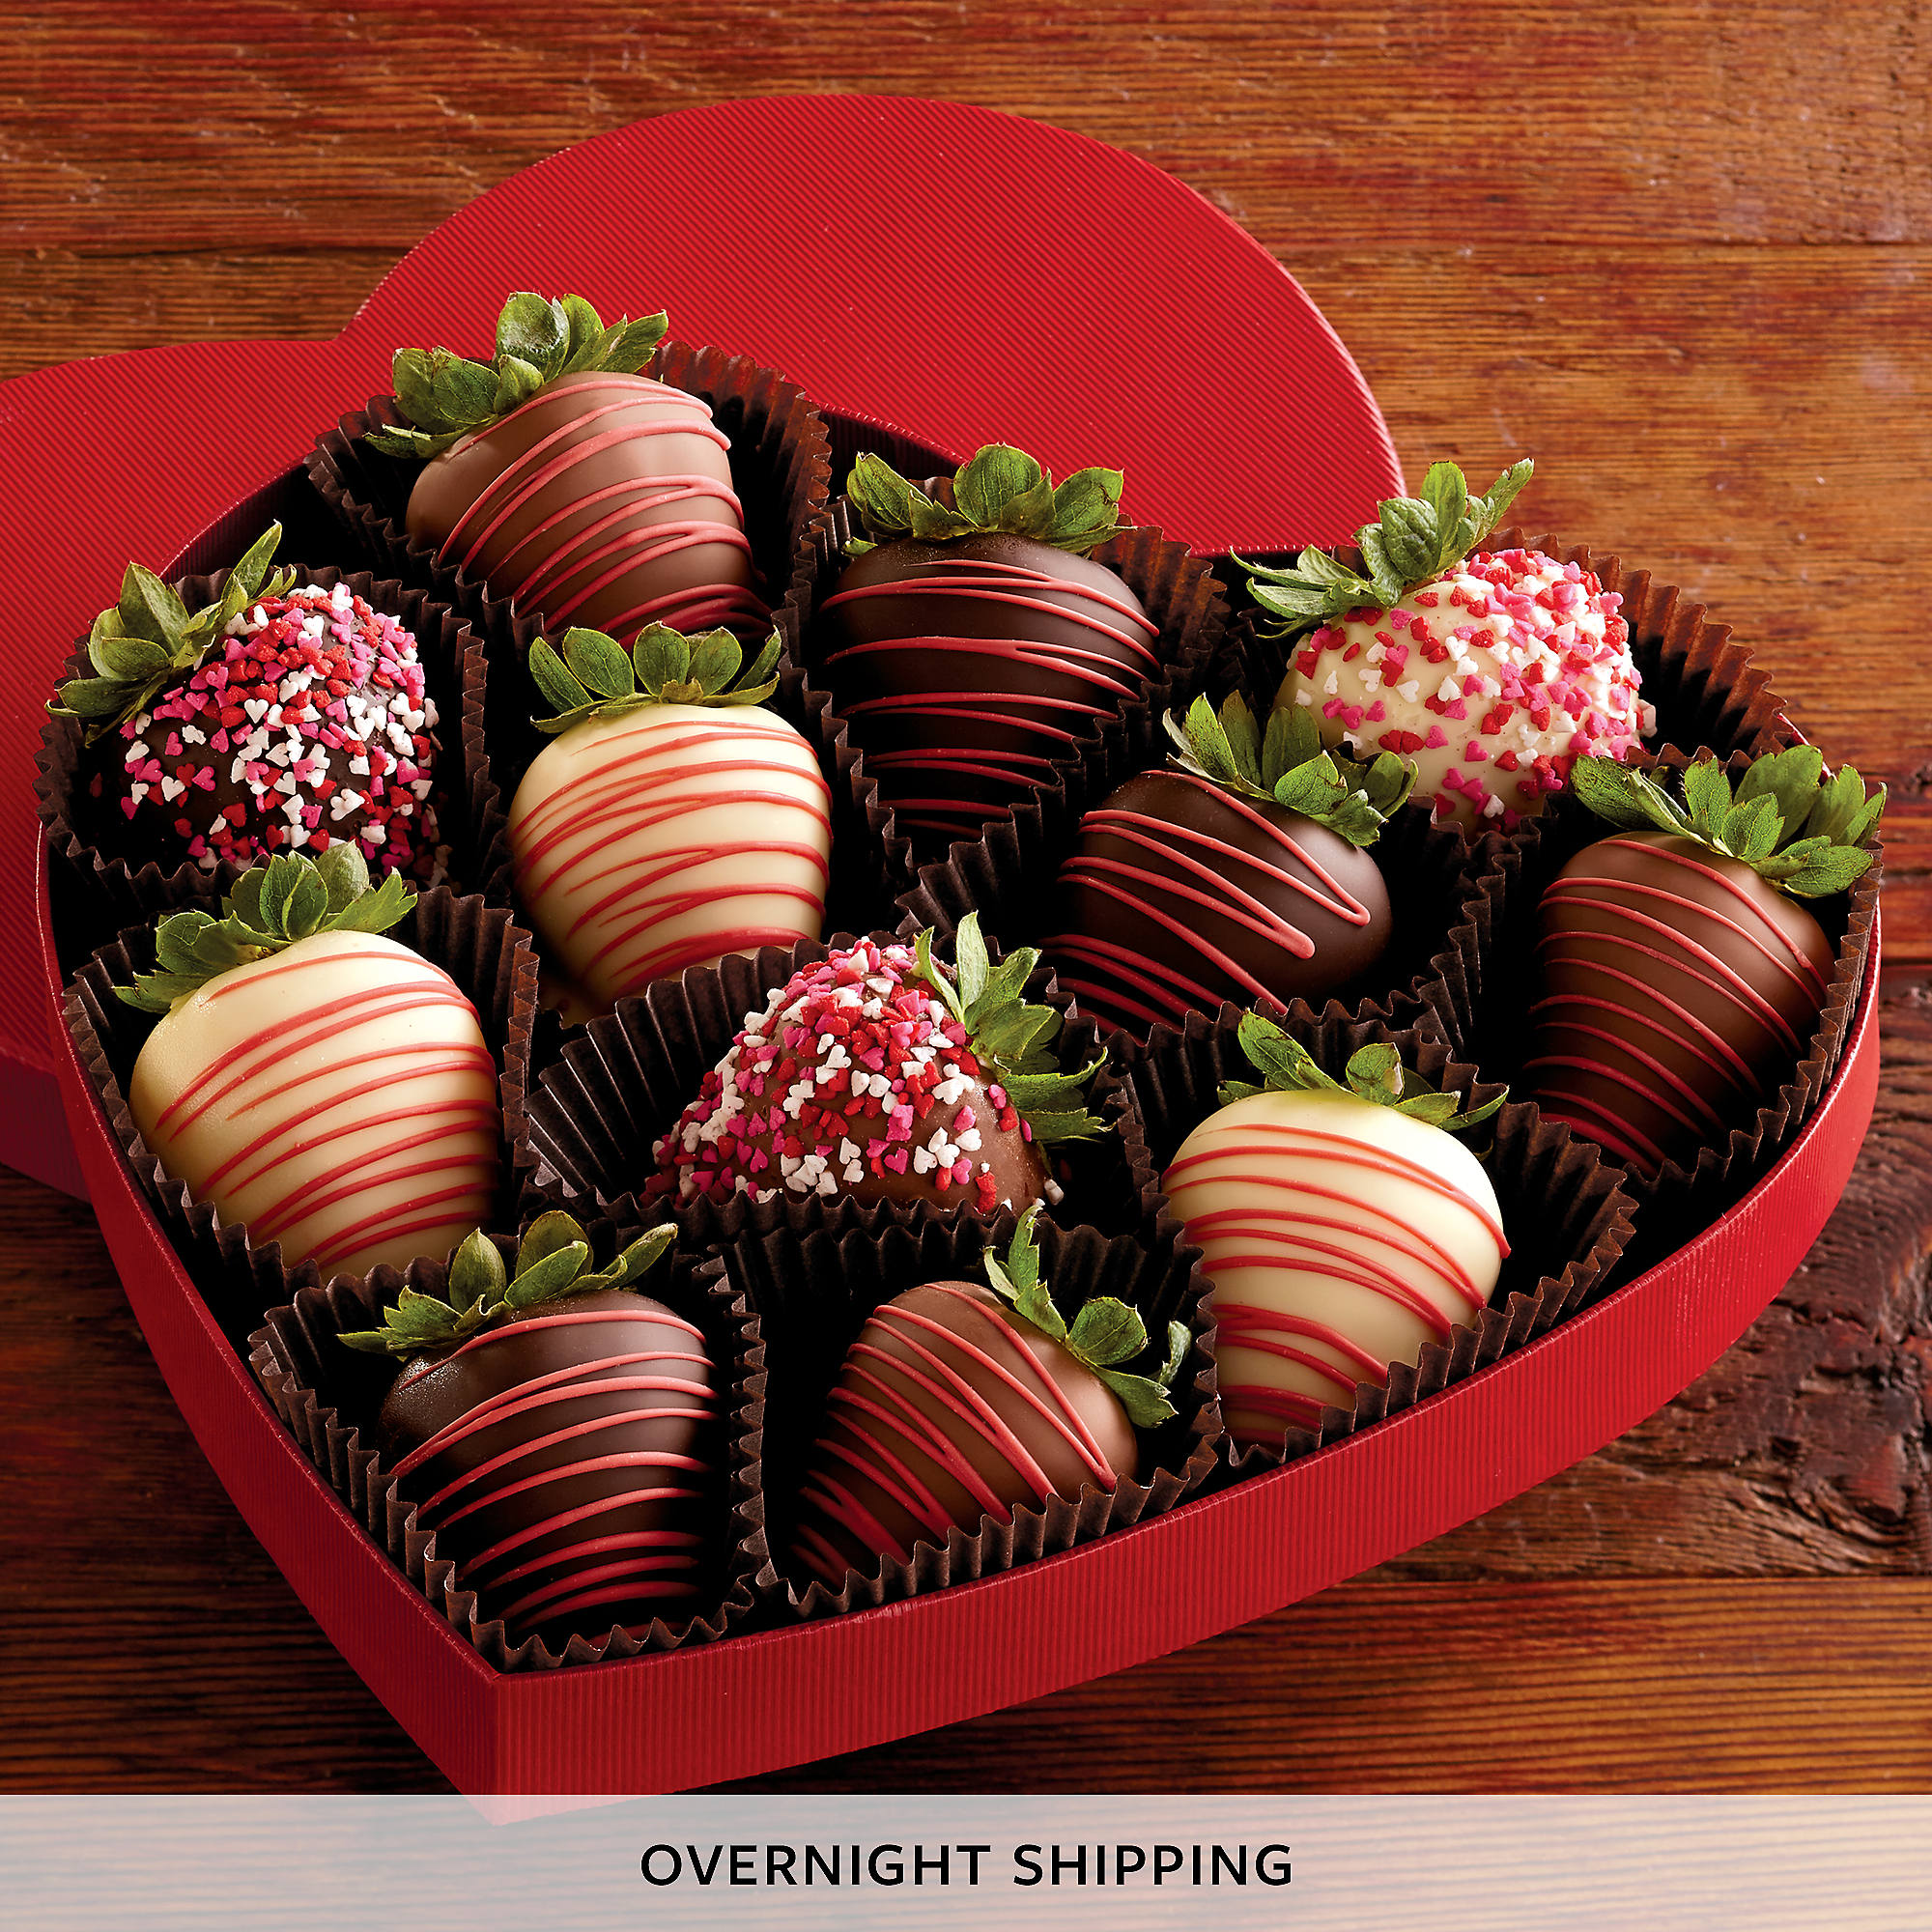 Chocolate Strawberry Gifts - Best Seller Gift Review